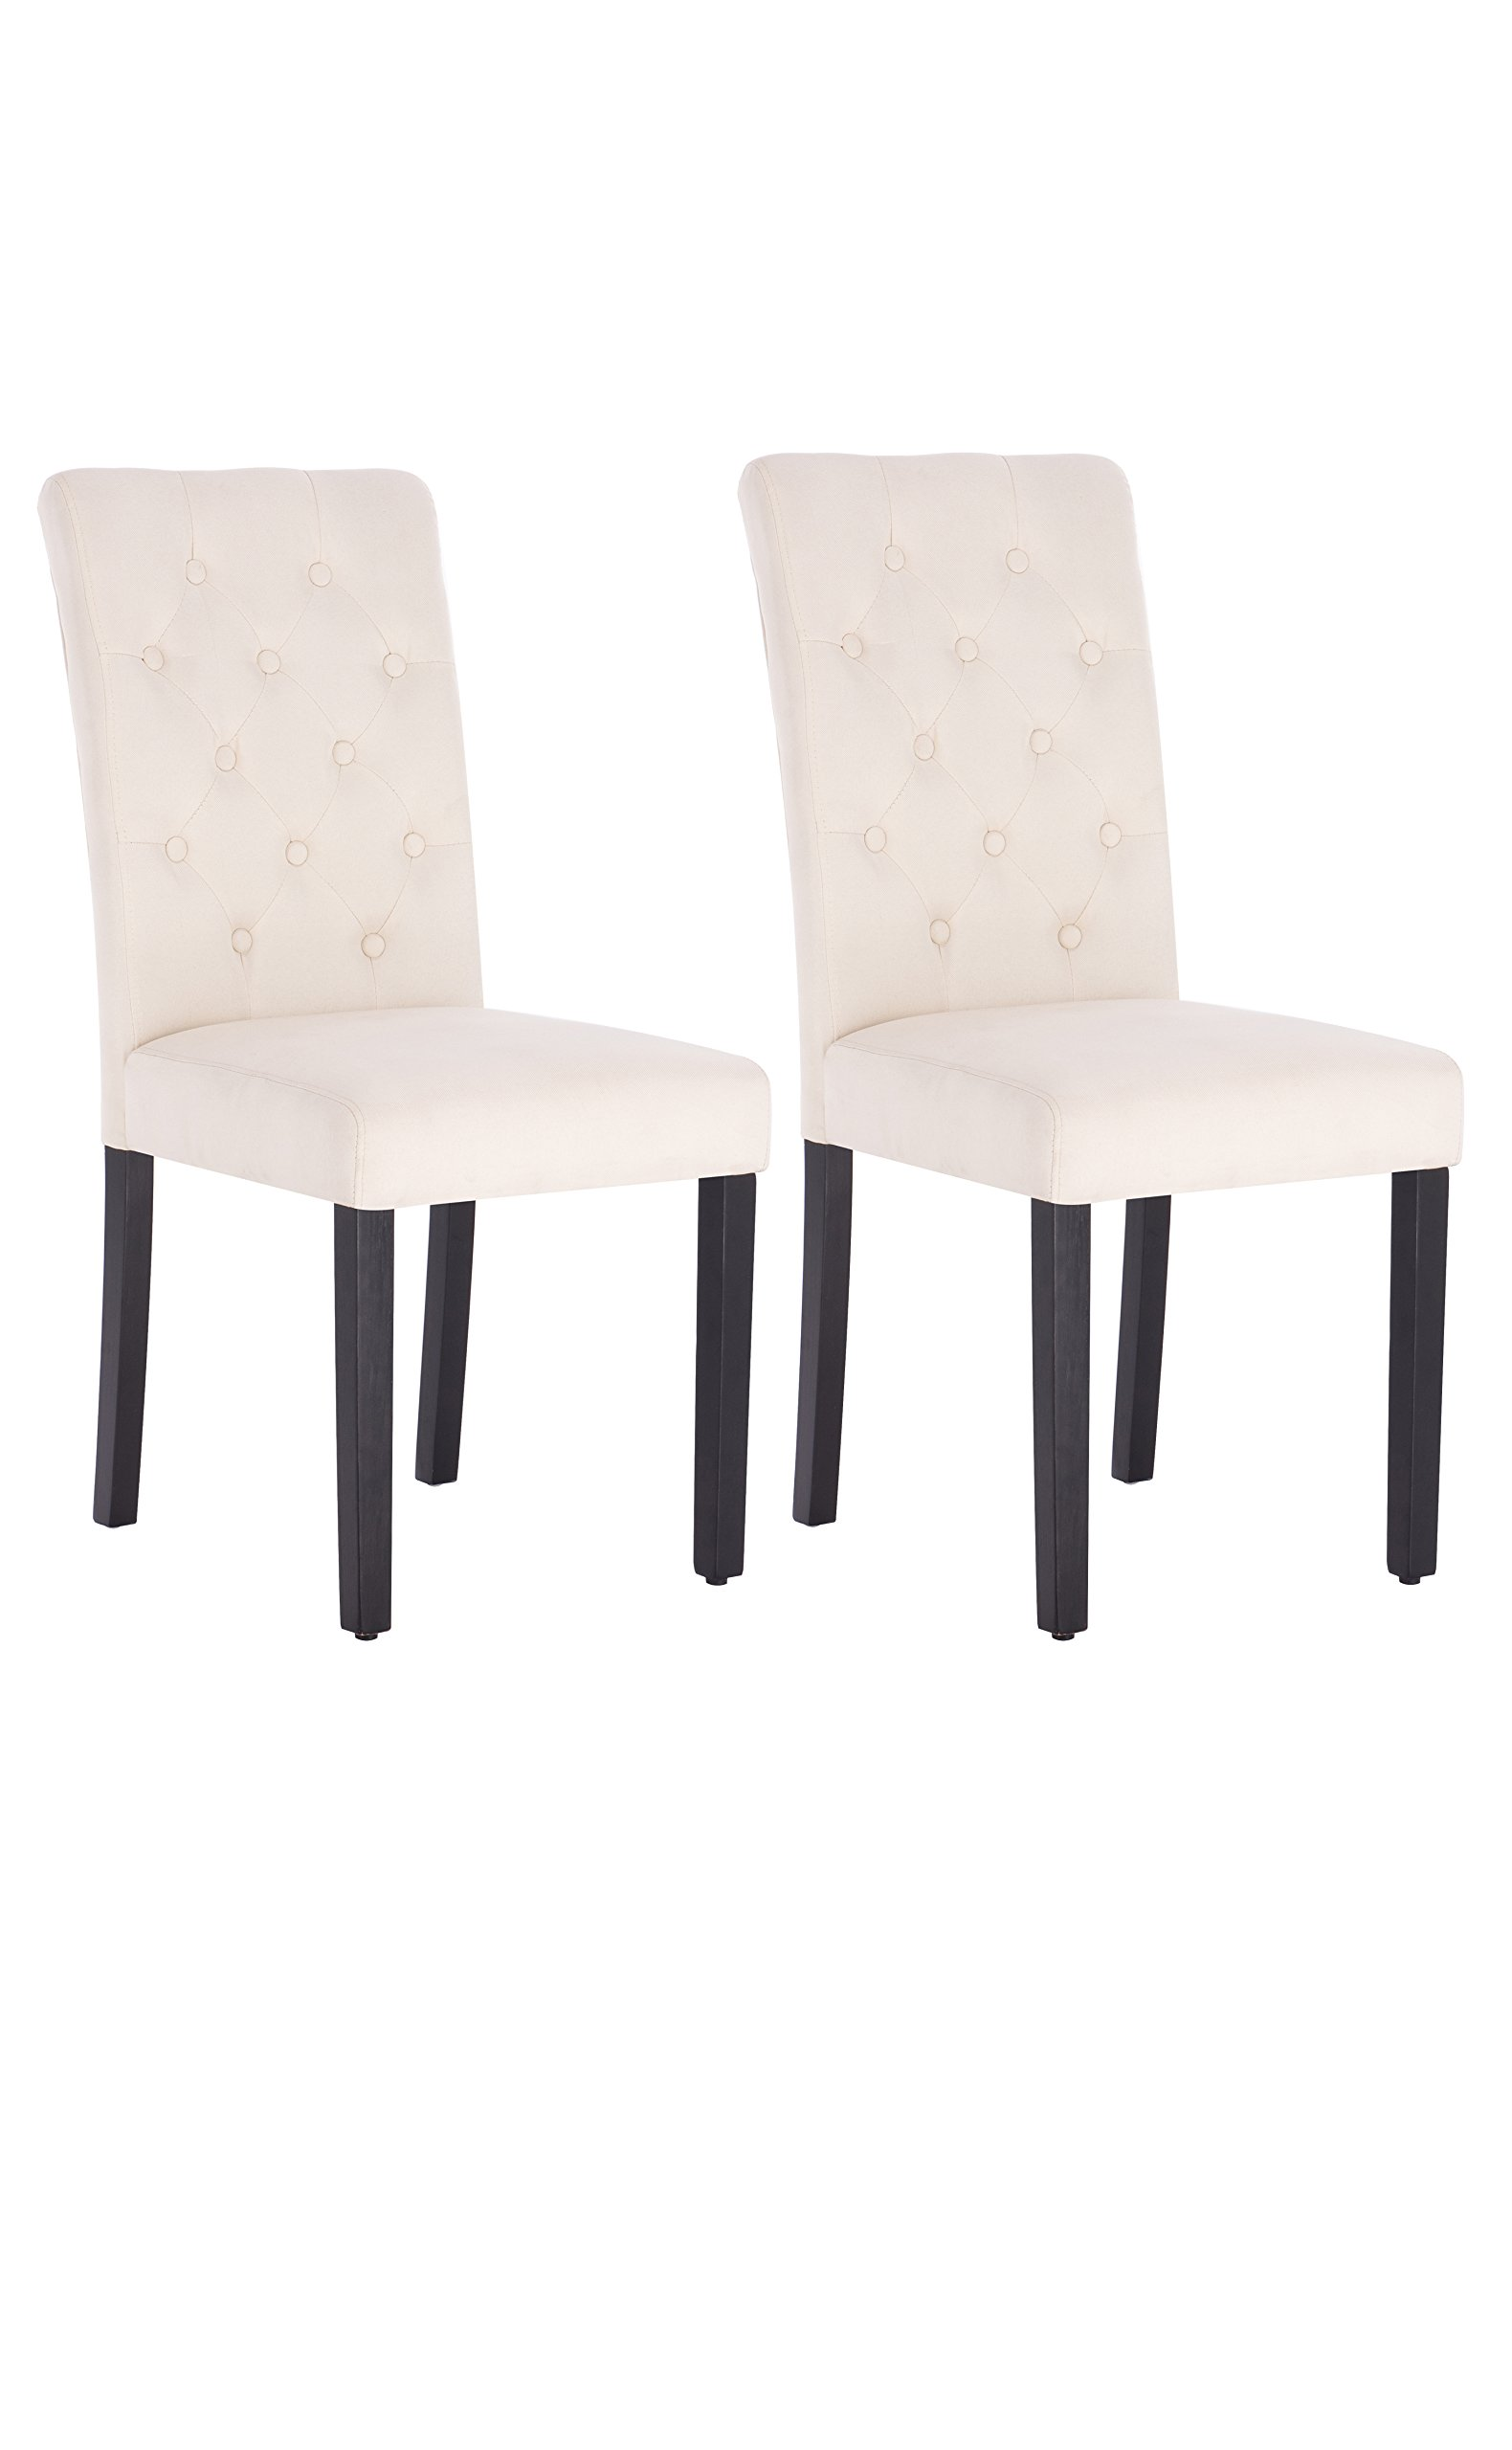 Fabric Dining Chair Modern Tufted Solid Wood Per-Home Padded Parsons Chair for Dining Room Living Room Set of 2 (Beige)